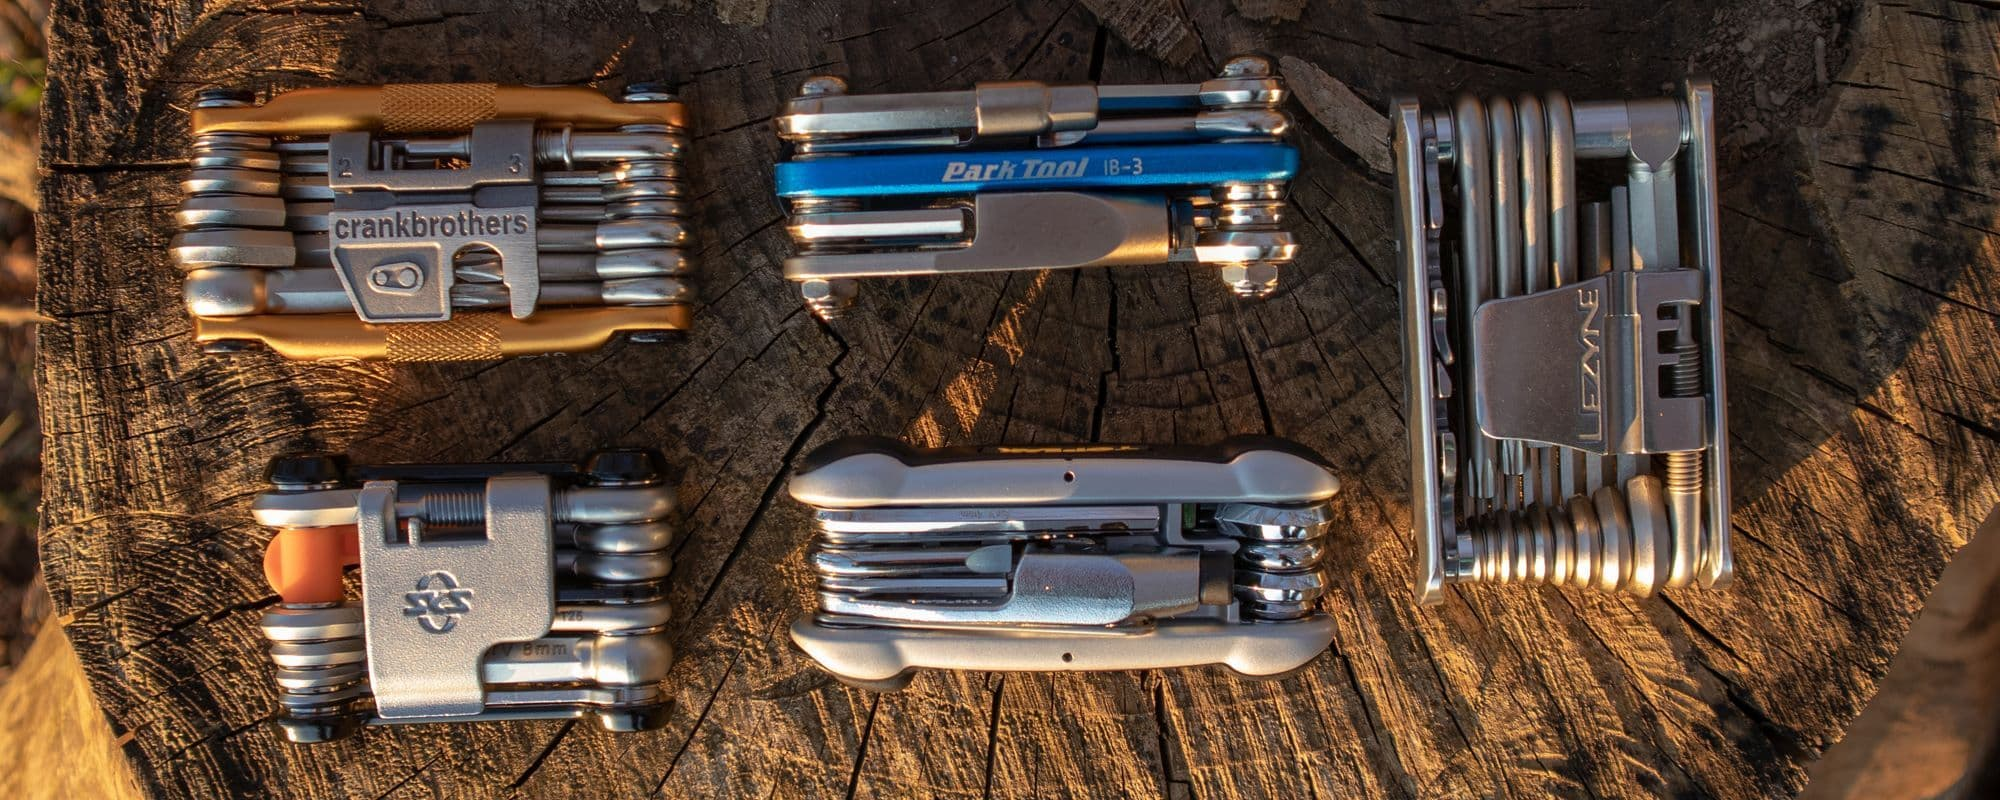 Bike Multitool Test - Which bike tool is really reliable on the road?